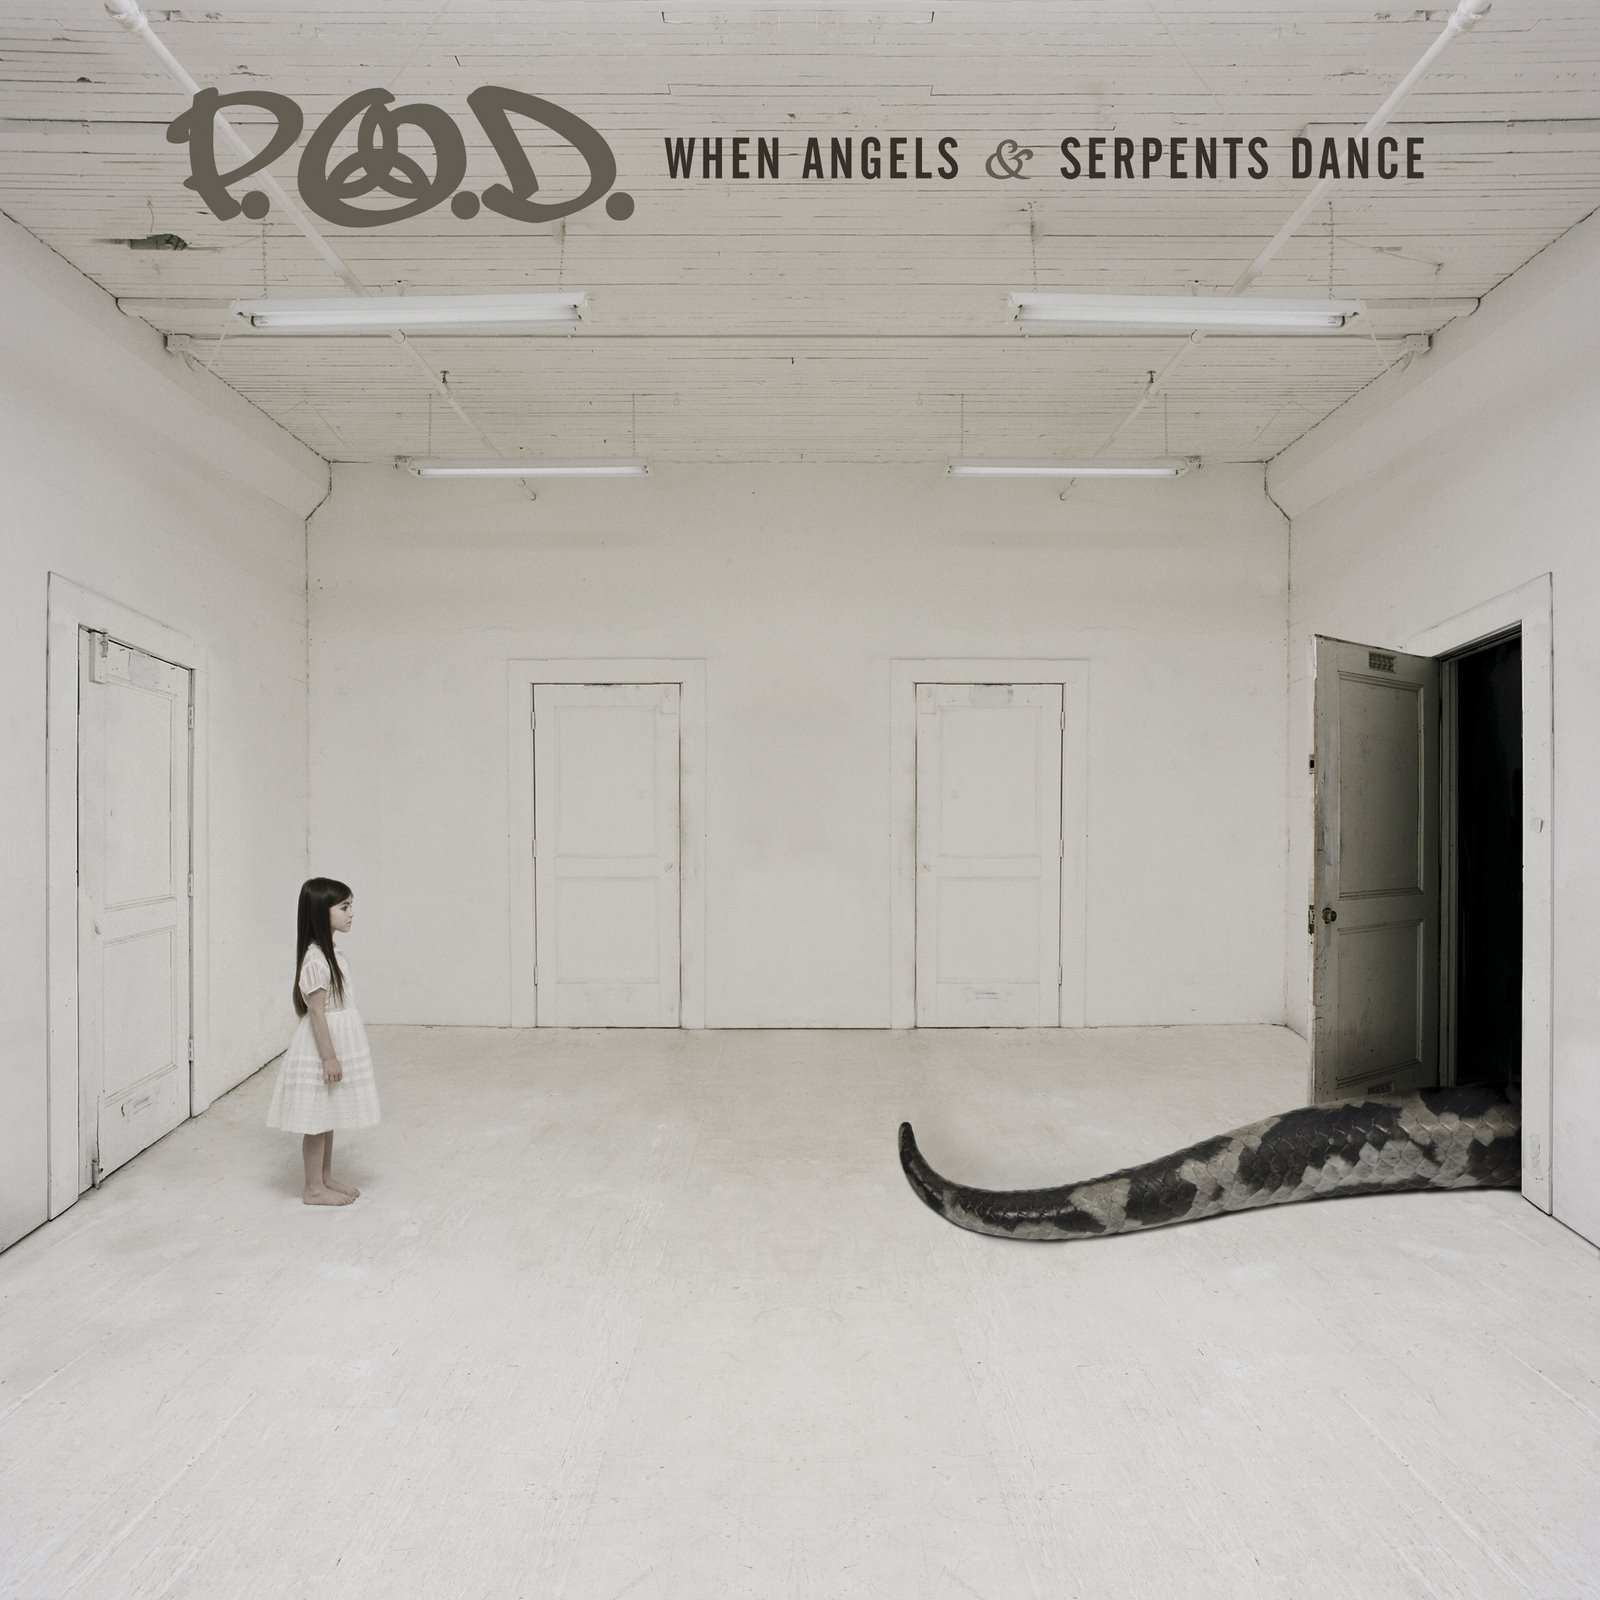 P.O.D. - When Angels And Serpents Dance 2008